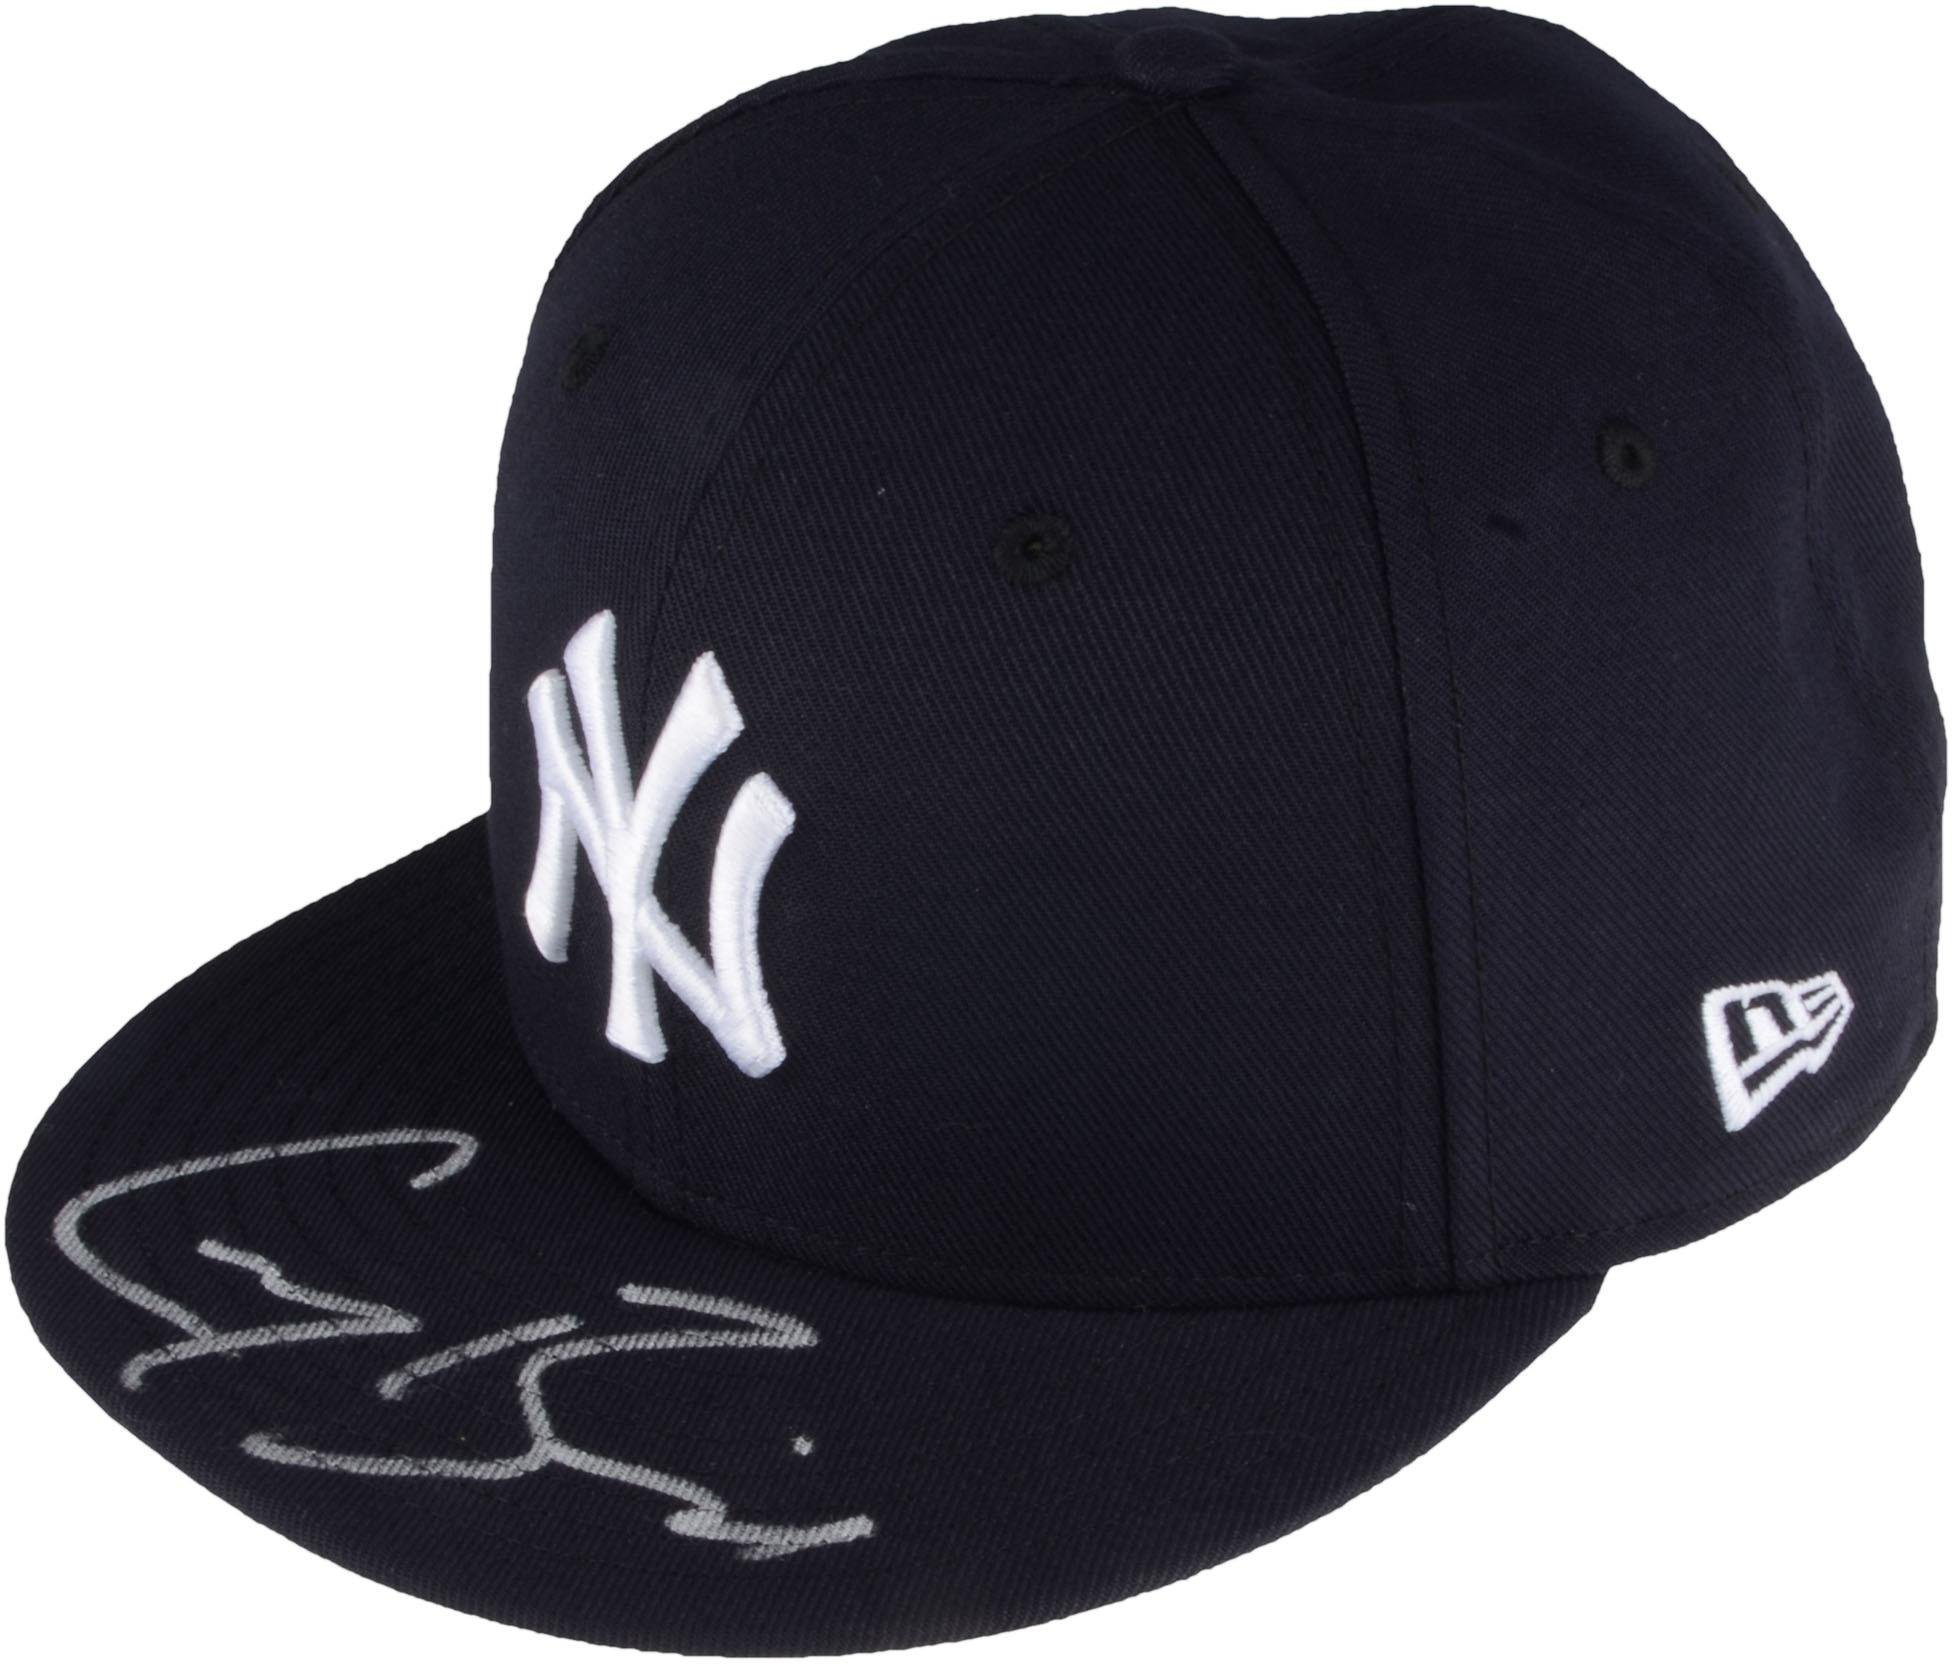 Greg Bird New York Yankees Autographed New Era Cap Fanatics Authentic Certified Autographed Hats